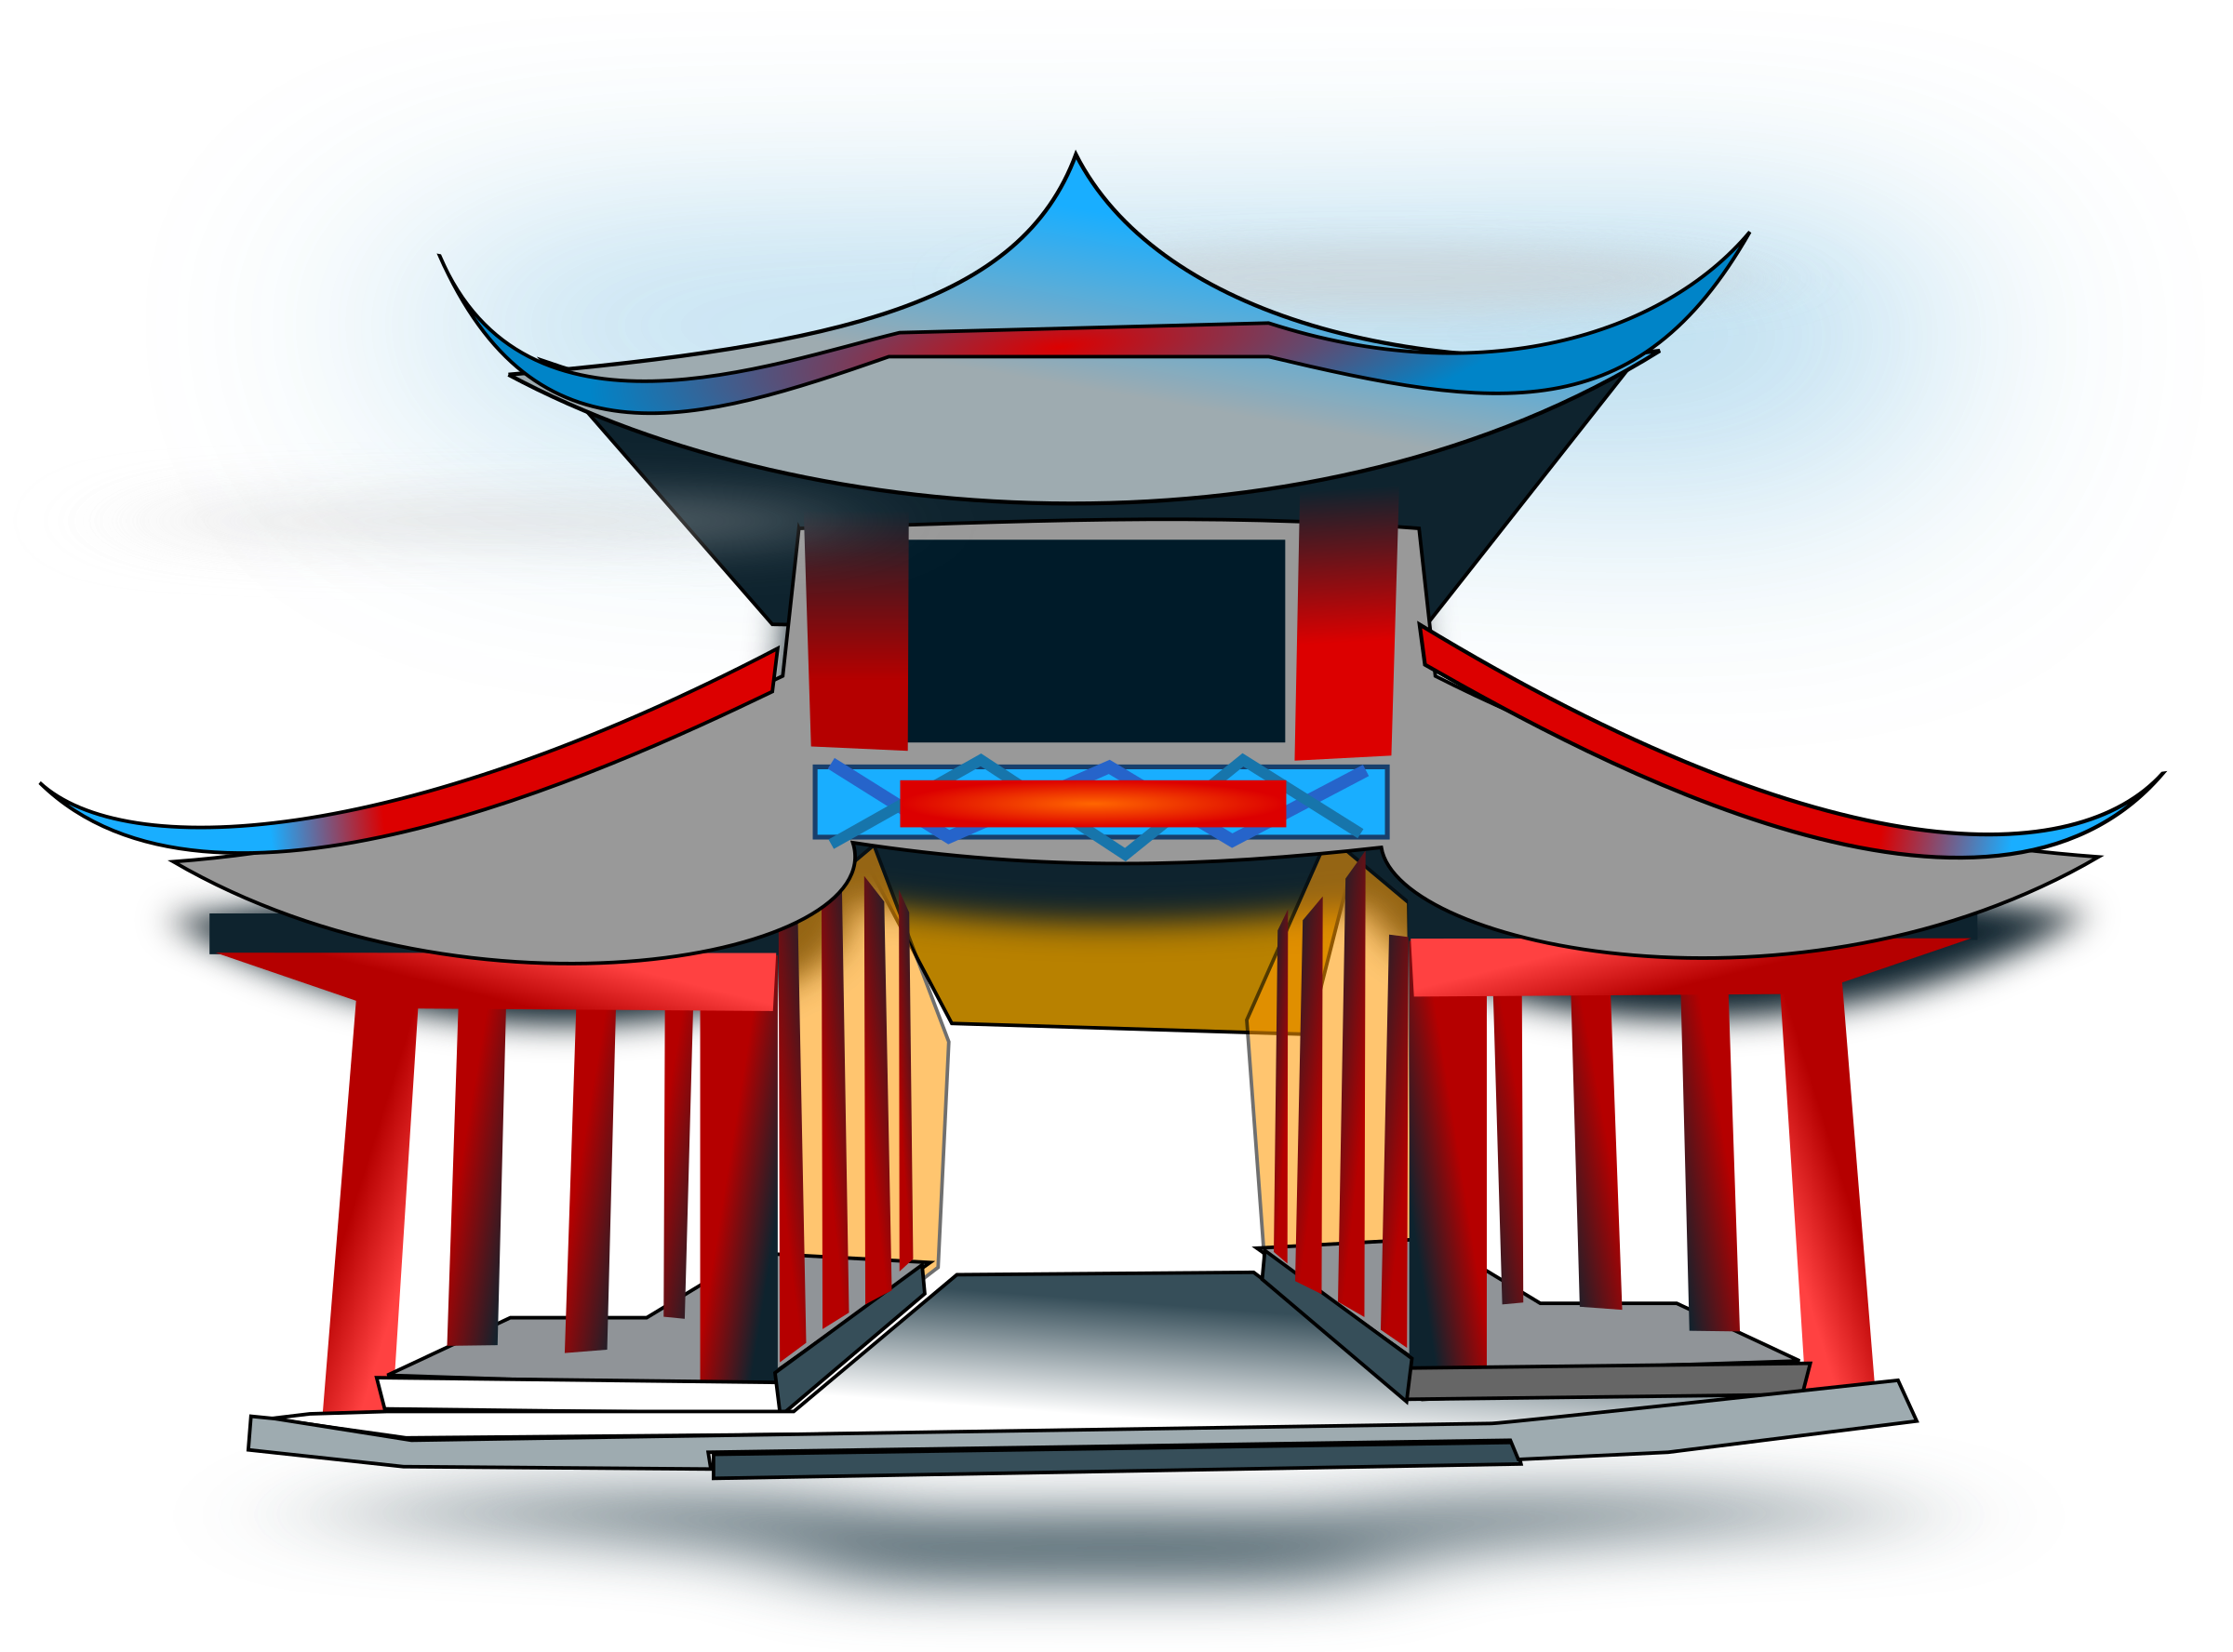 Architecure big image png. Clipart castle chinese